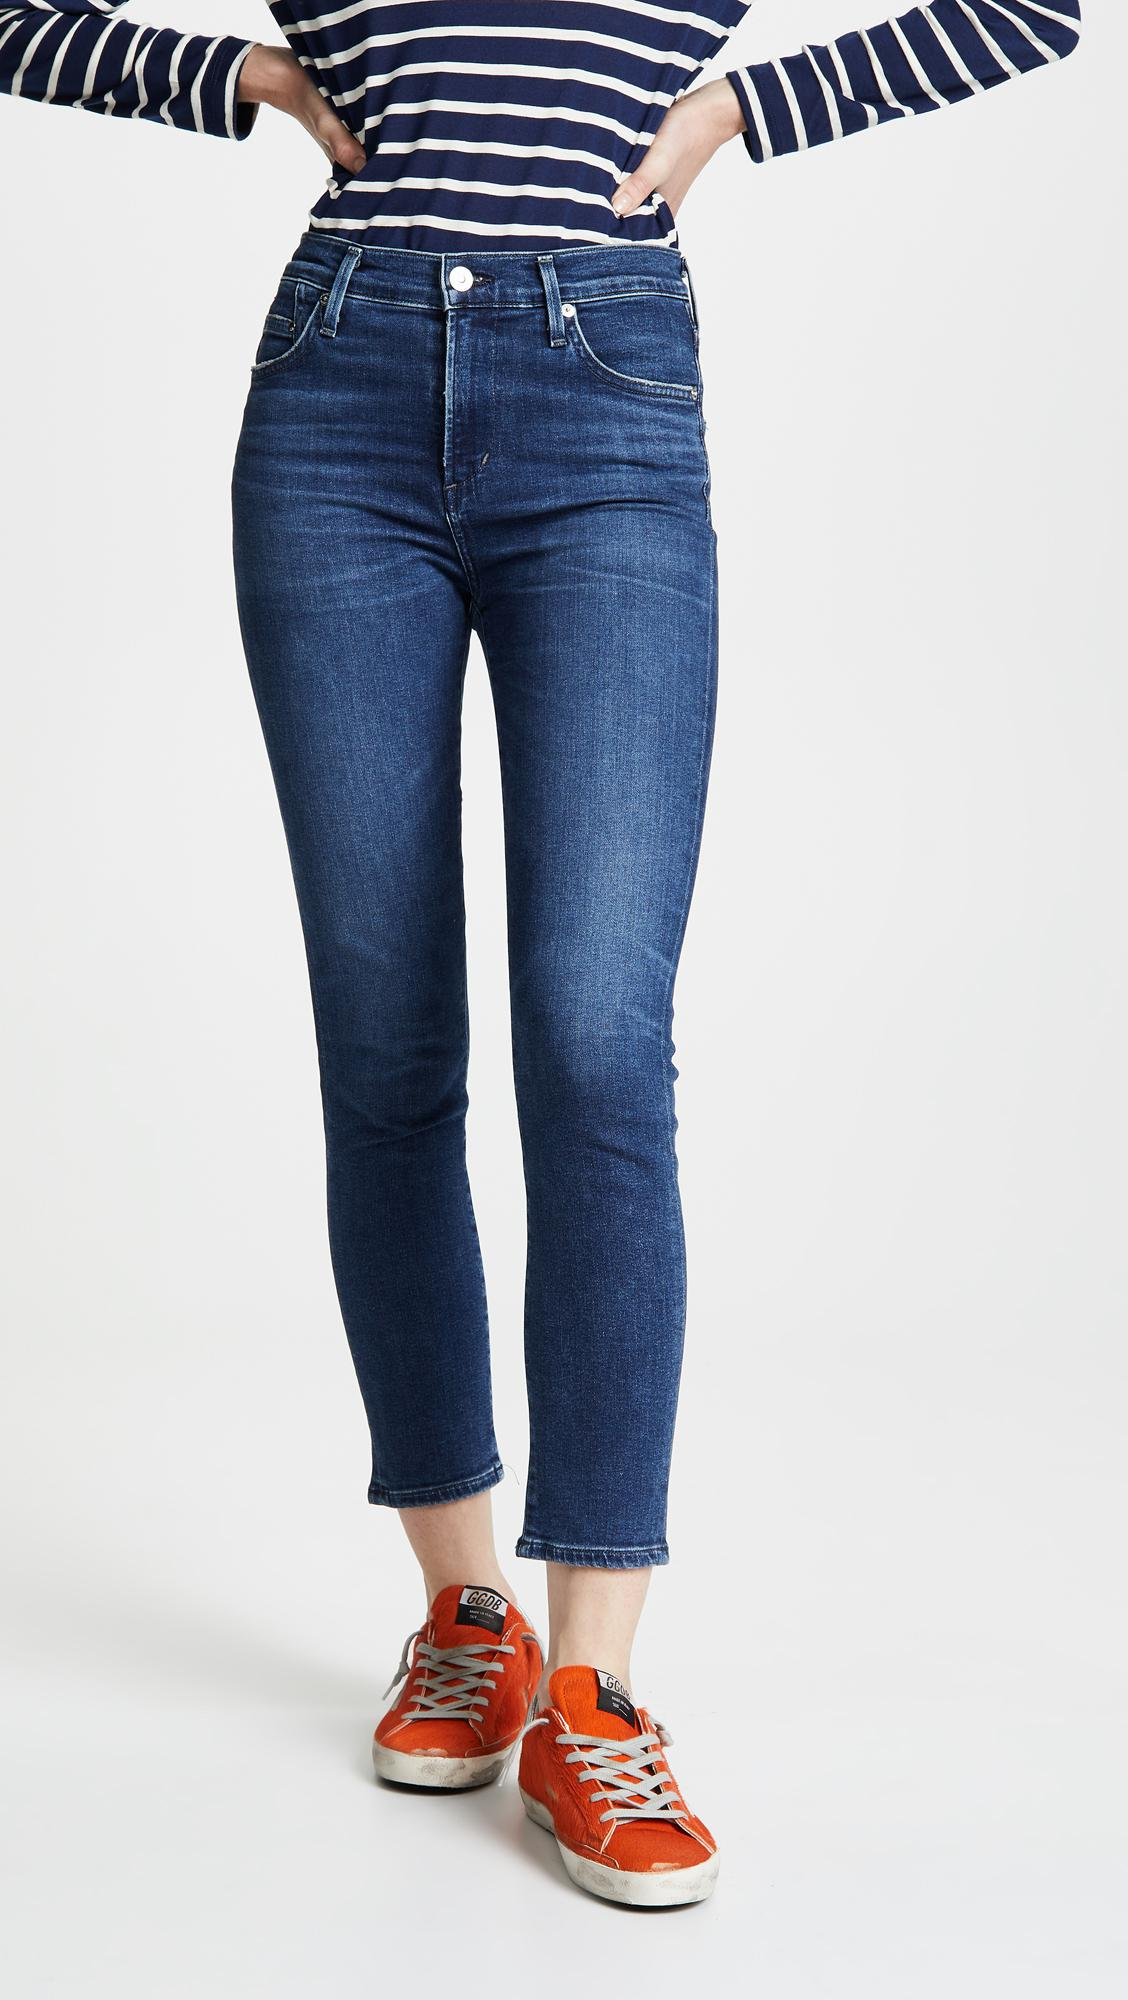 9e37984268653 Citizens Of Humanity Rocket Crop High Rise Skinny Jeans in Blue - Lyst